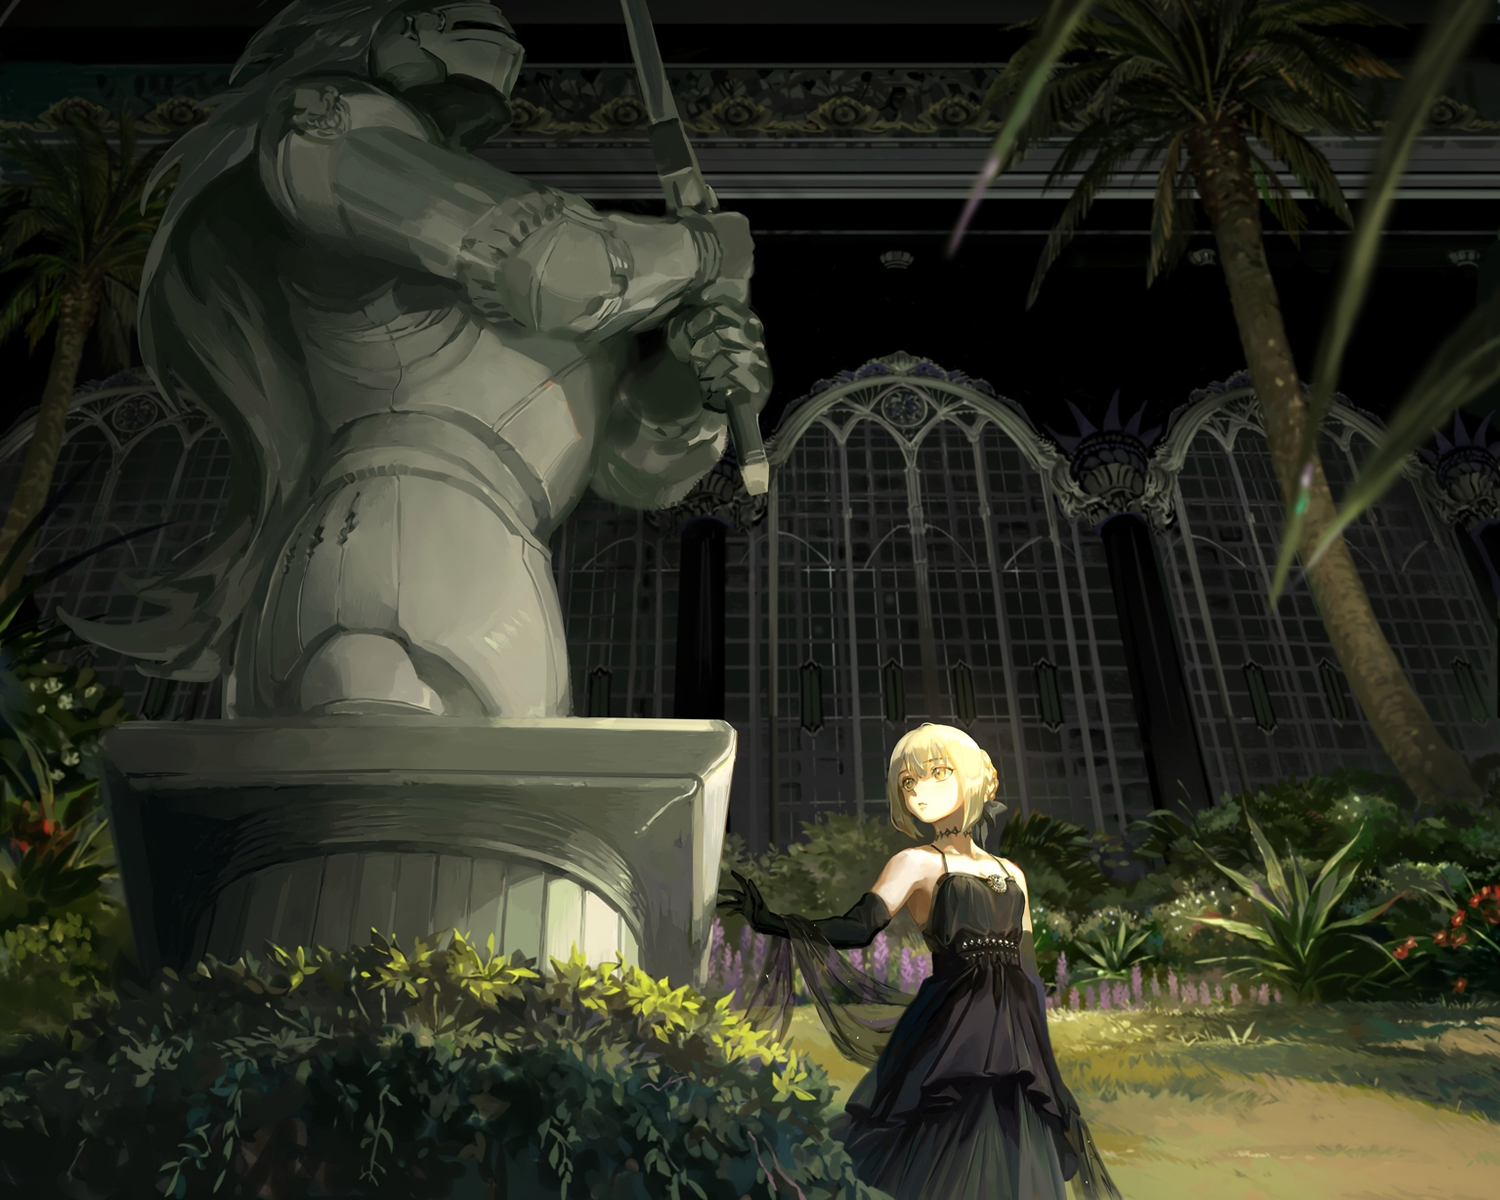 artoria_pendragon_(all) blonde_hair bow building choker cropped dress elbow_gloves fate/grand_order fate_(series) flowers gloves grass saber saber_alter short_hair taro-k tree yellow_eyes